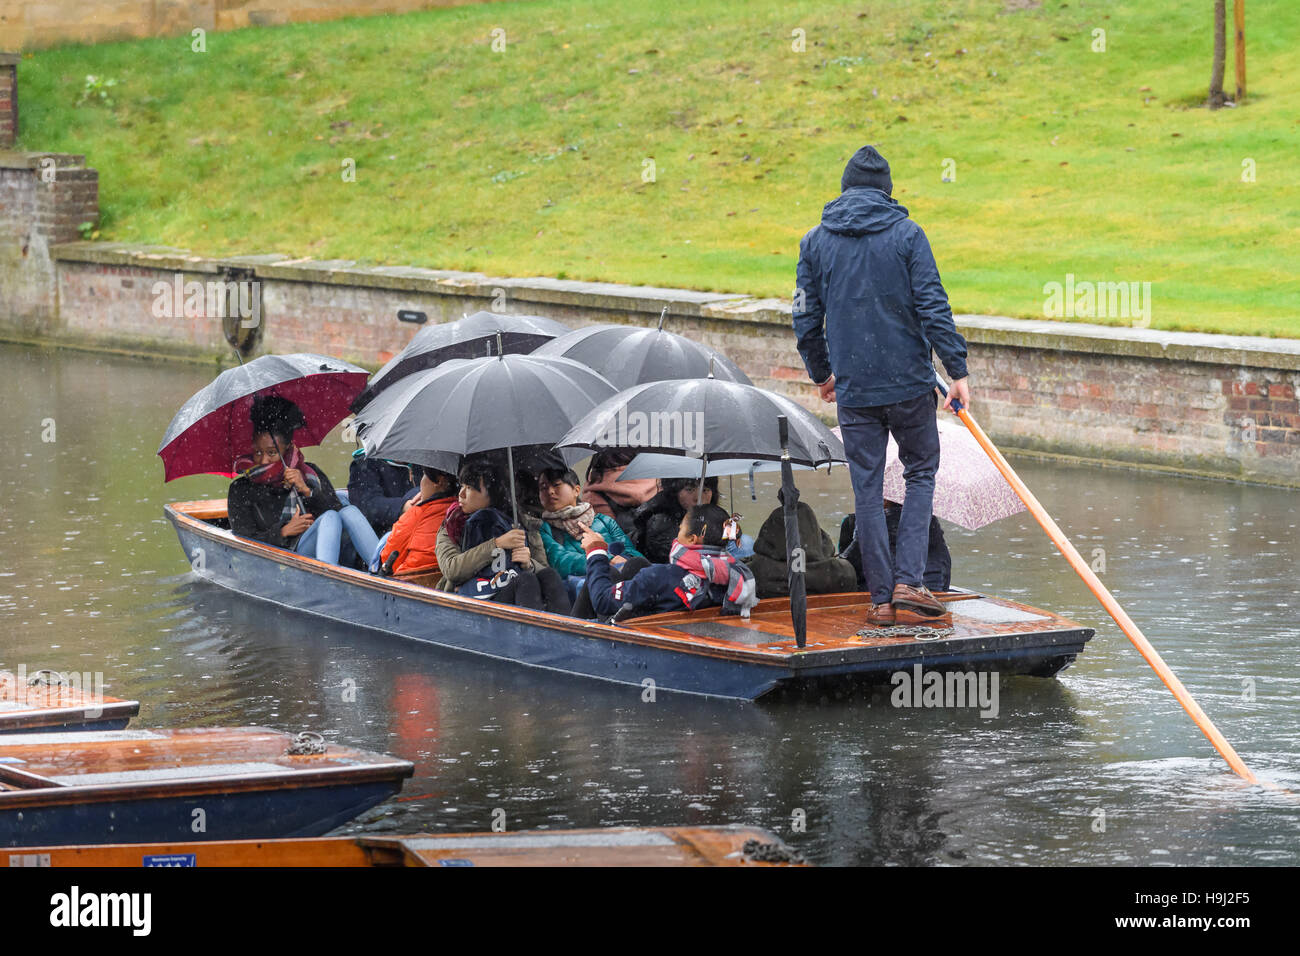 Tourists take a trip in a punt along the river Cam on a rainy day in Cambridge, England. - Stock Image